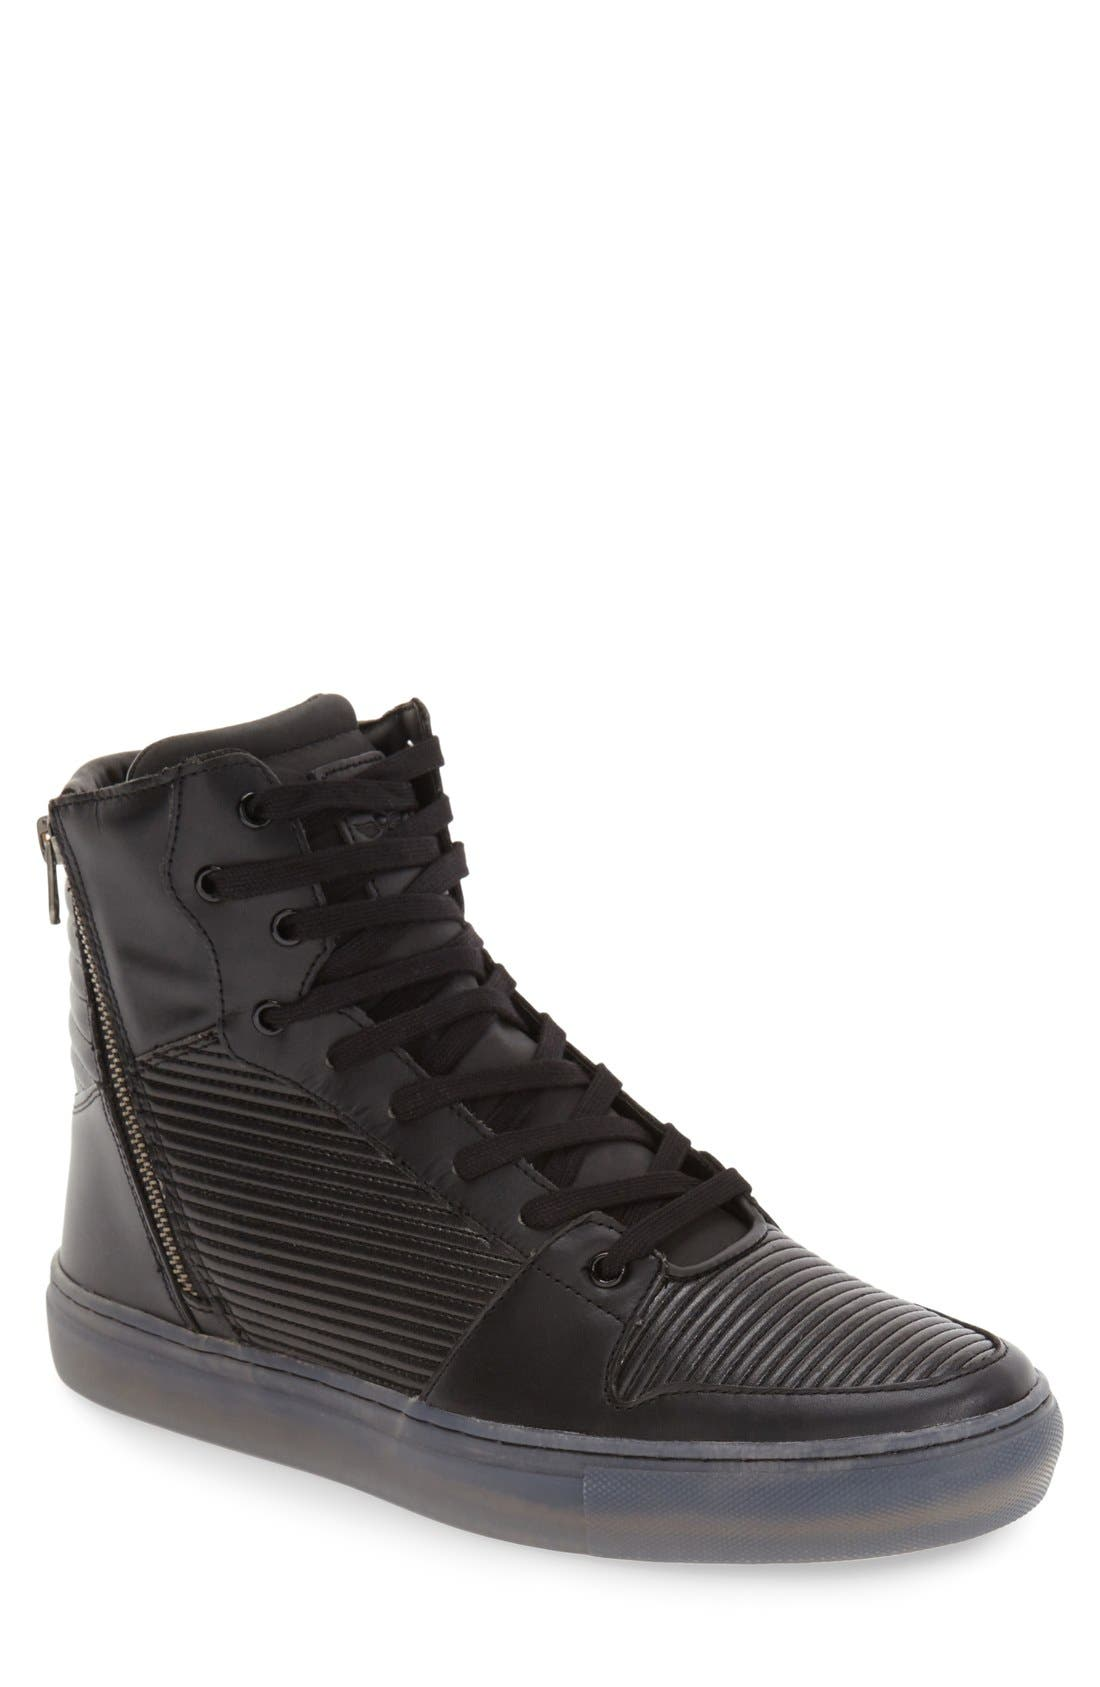 CREATIVE RECREATION 'Adonis' High Top Sneaker